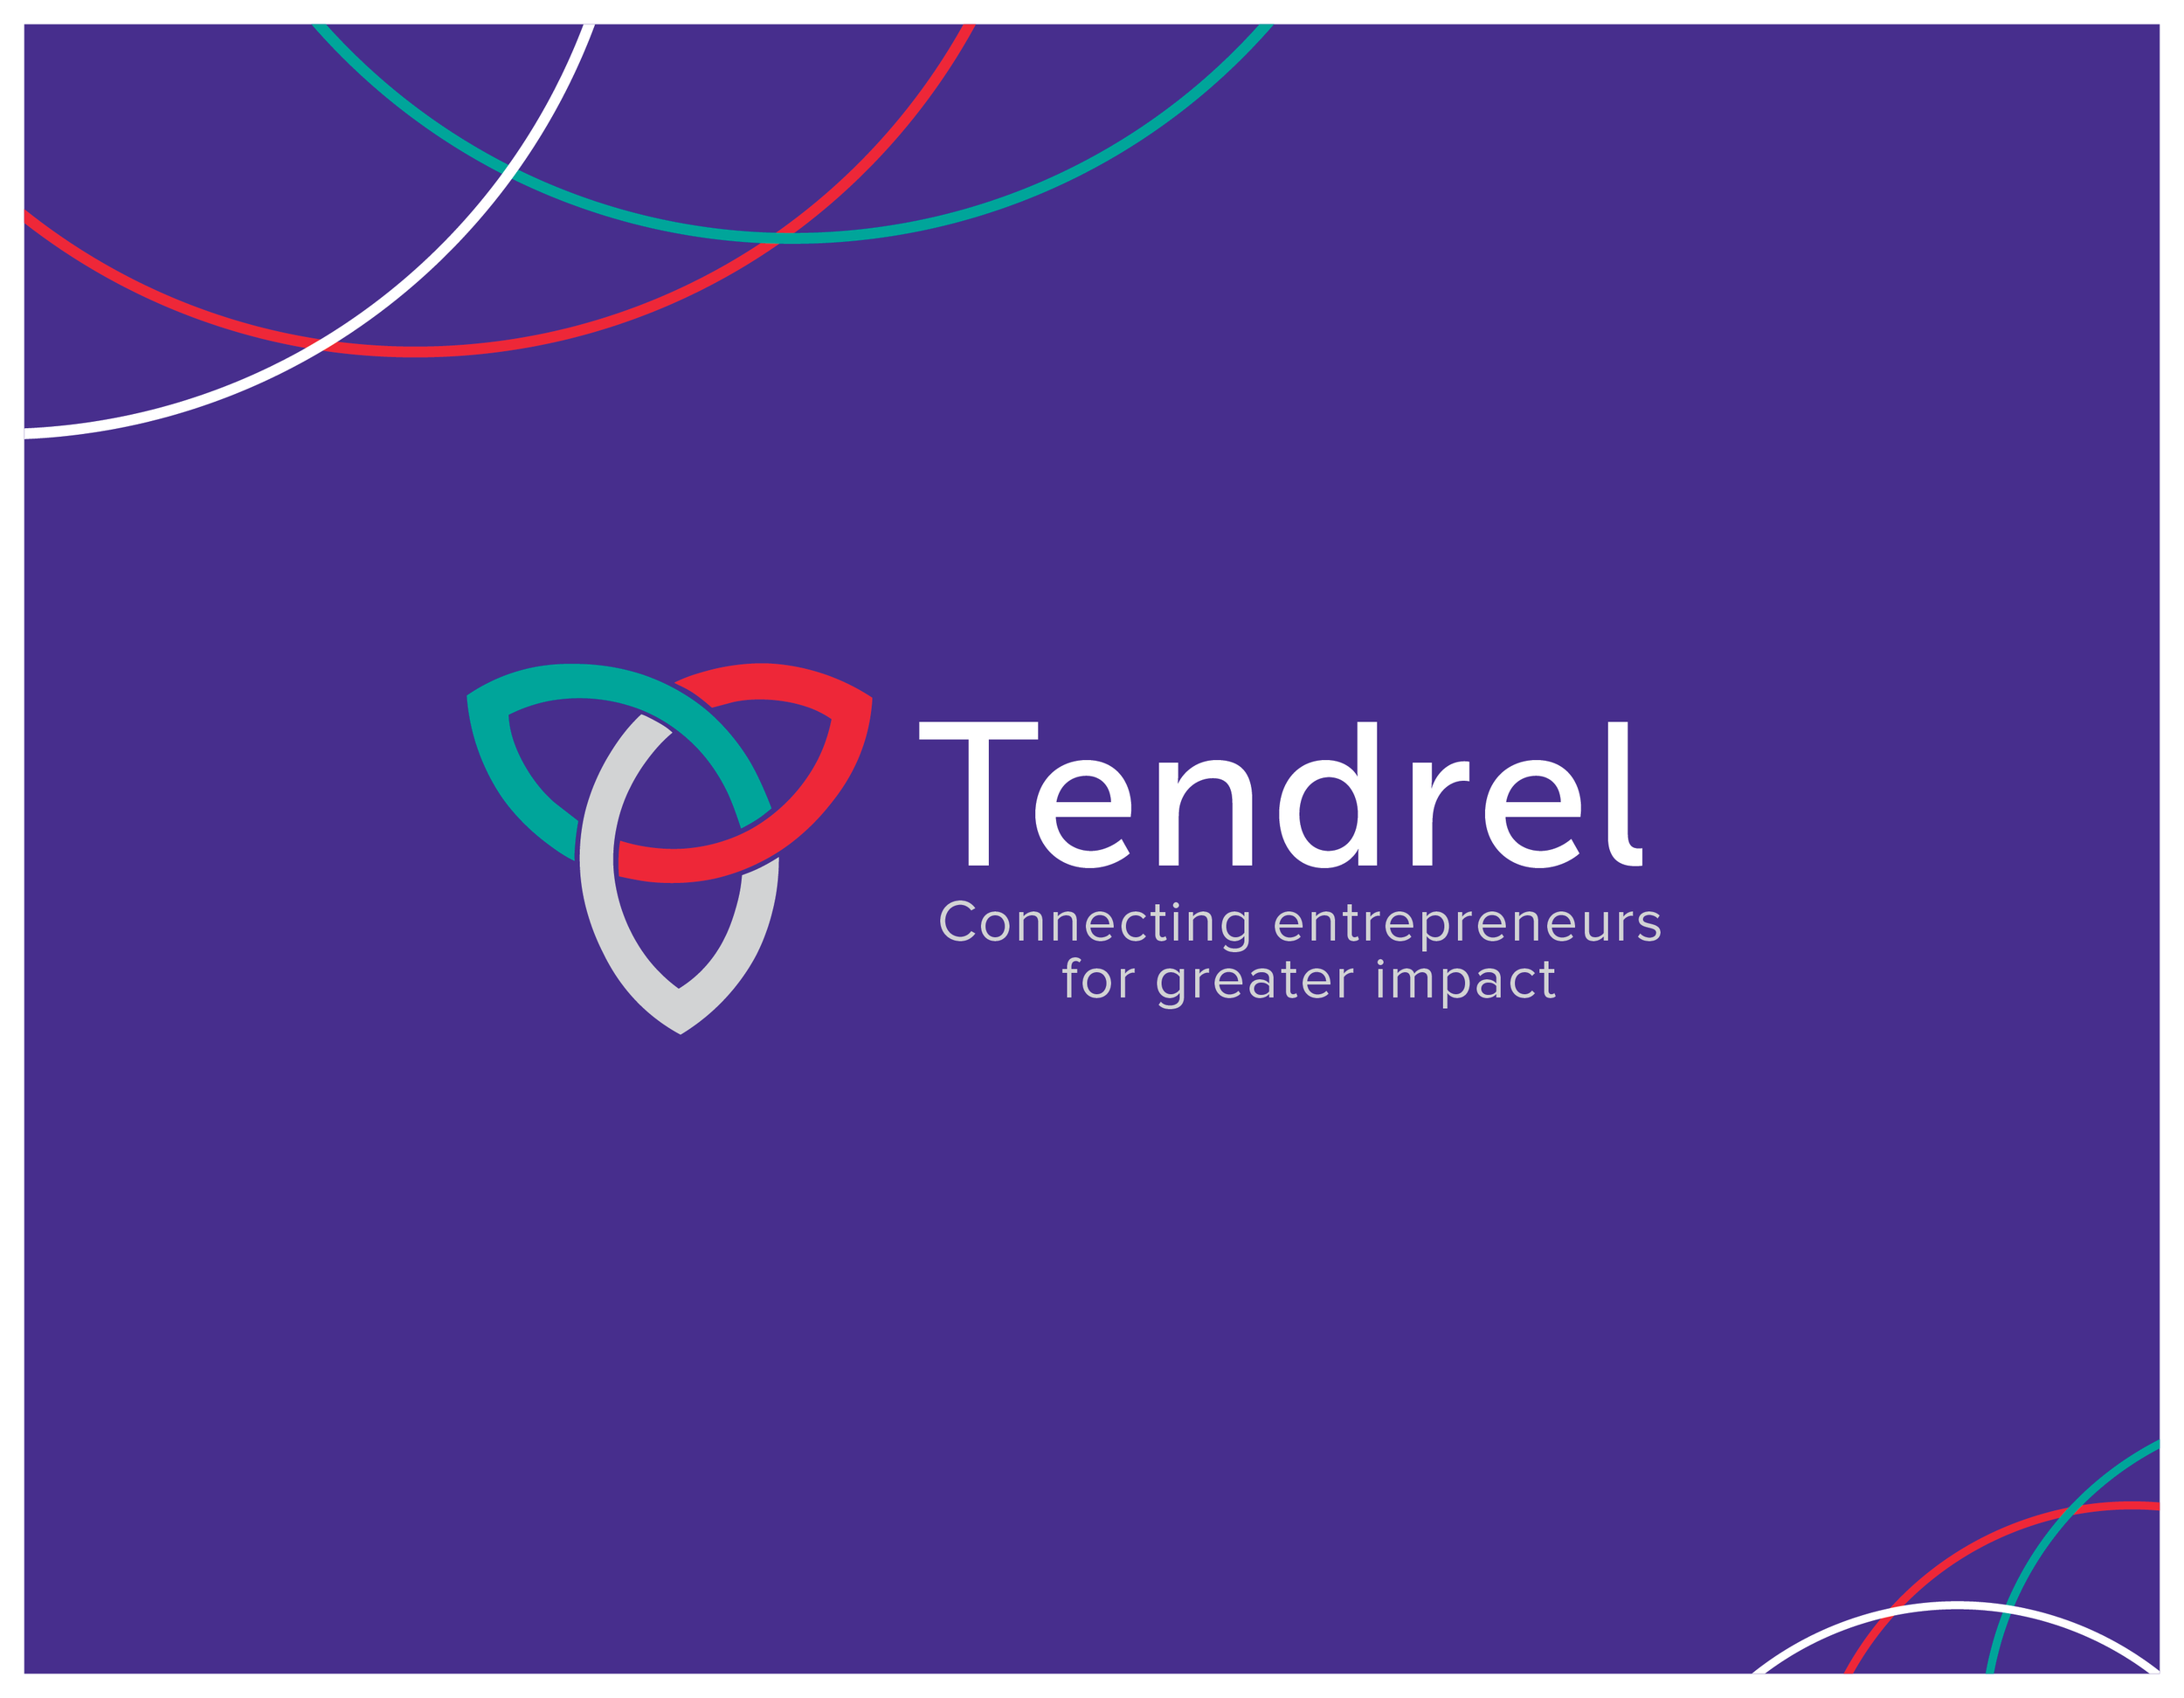 tendrel ppt-02.png